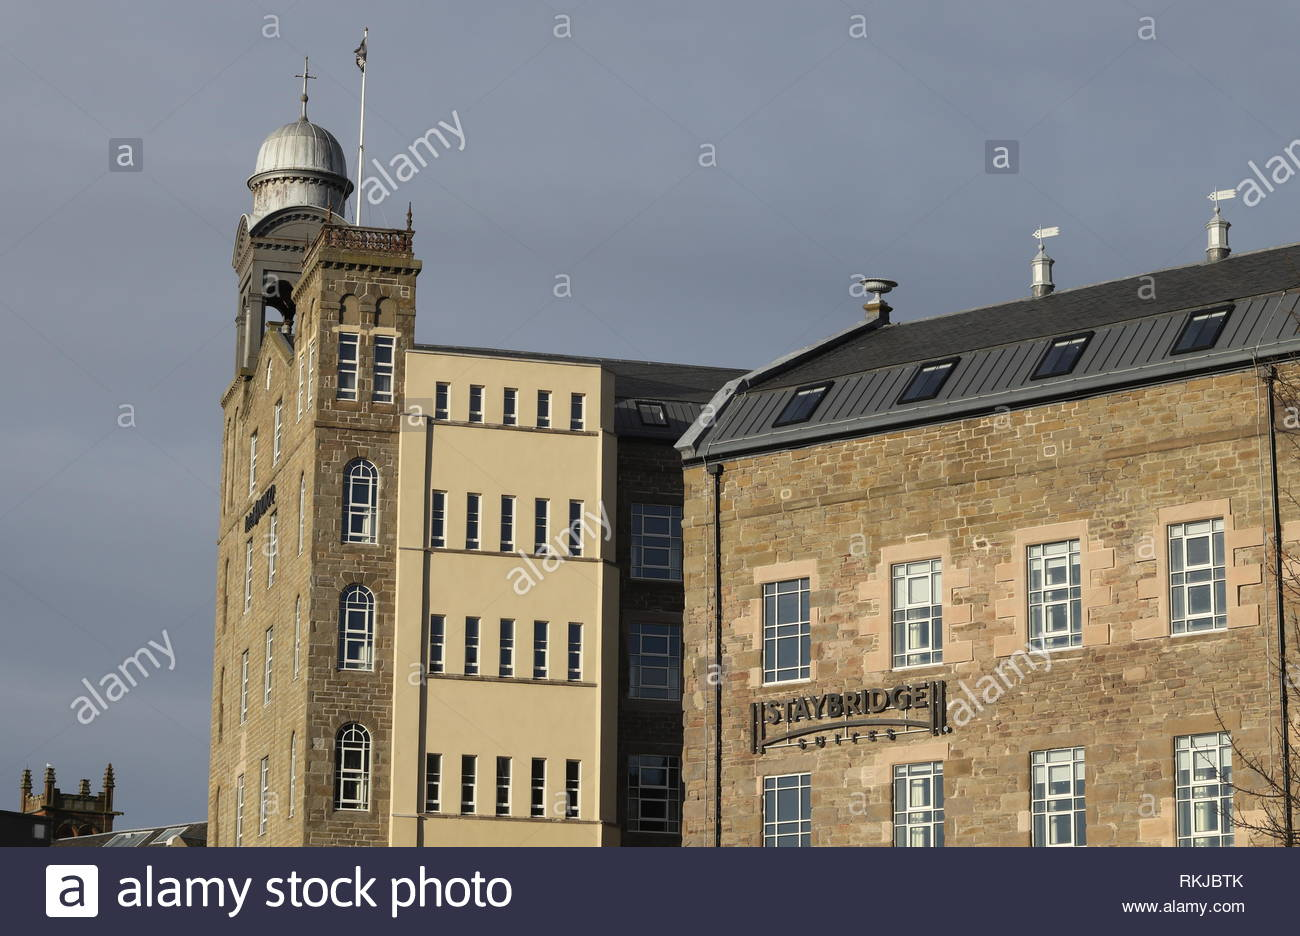 Exterior of Hotel Indigo and Staybridge Suites Dundee Scotland  January 2019 - Stock Image